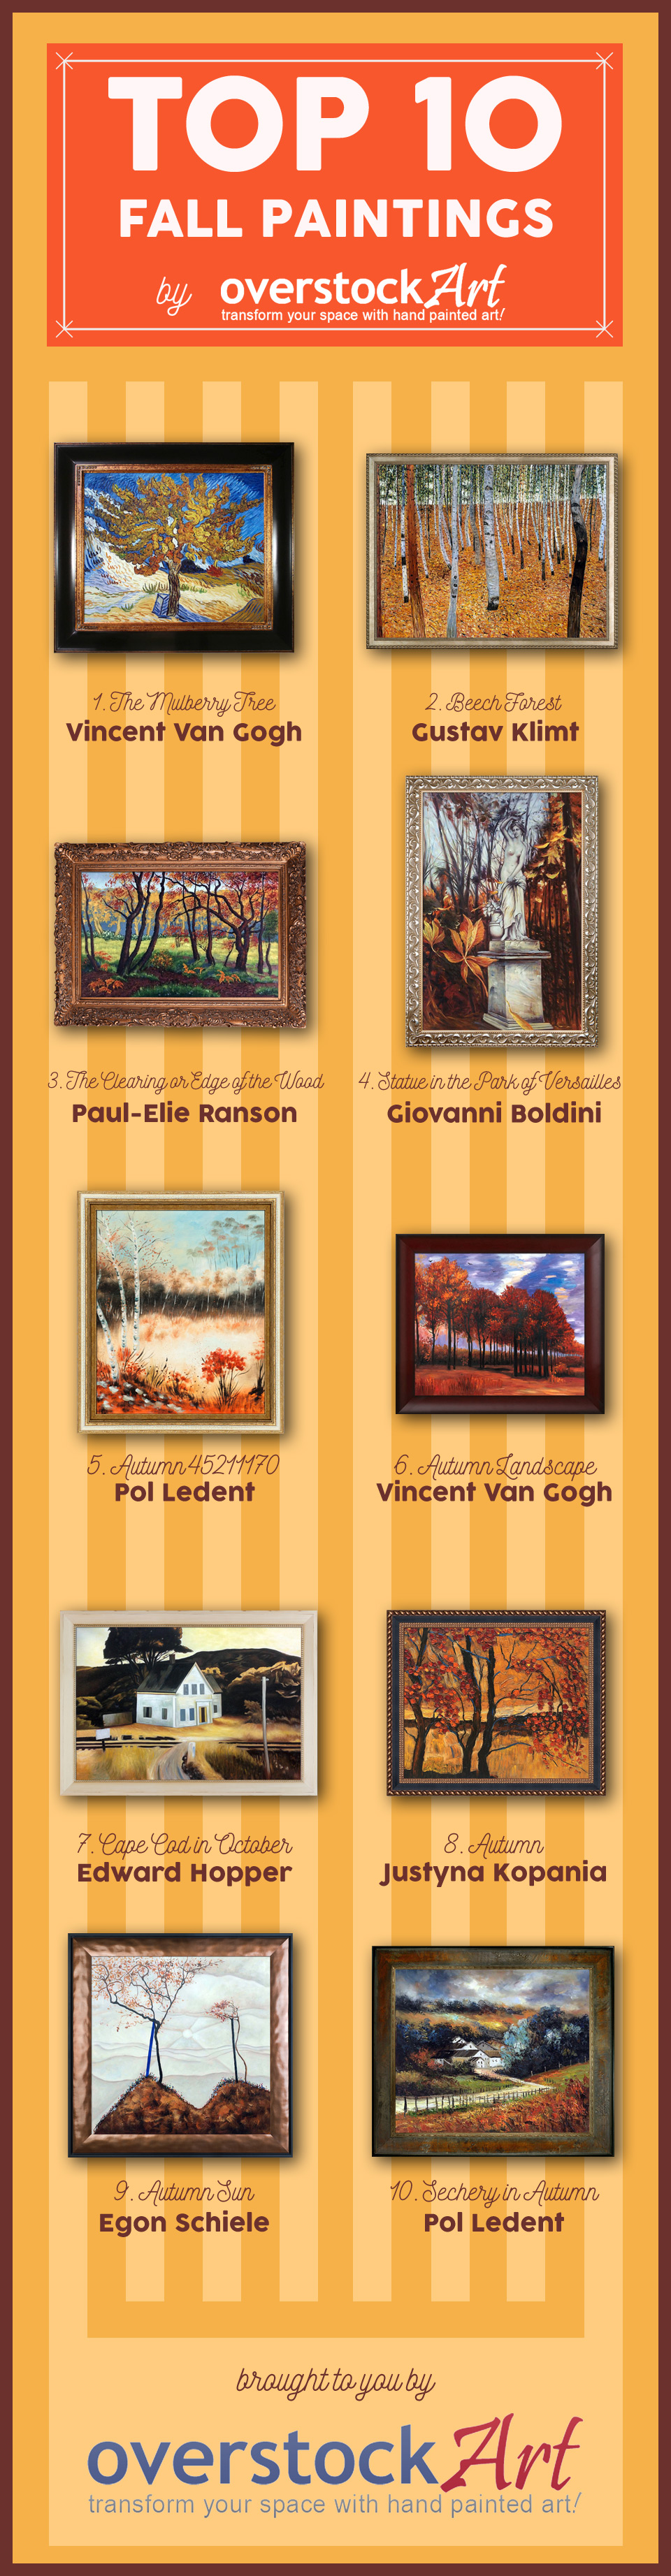 Top Ten Art for Fall 2016 Infographic